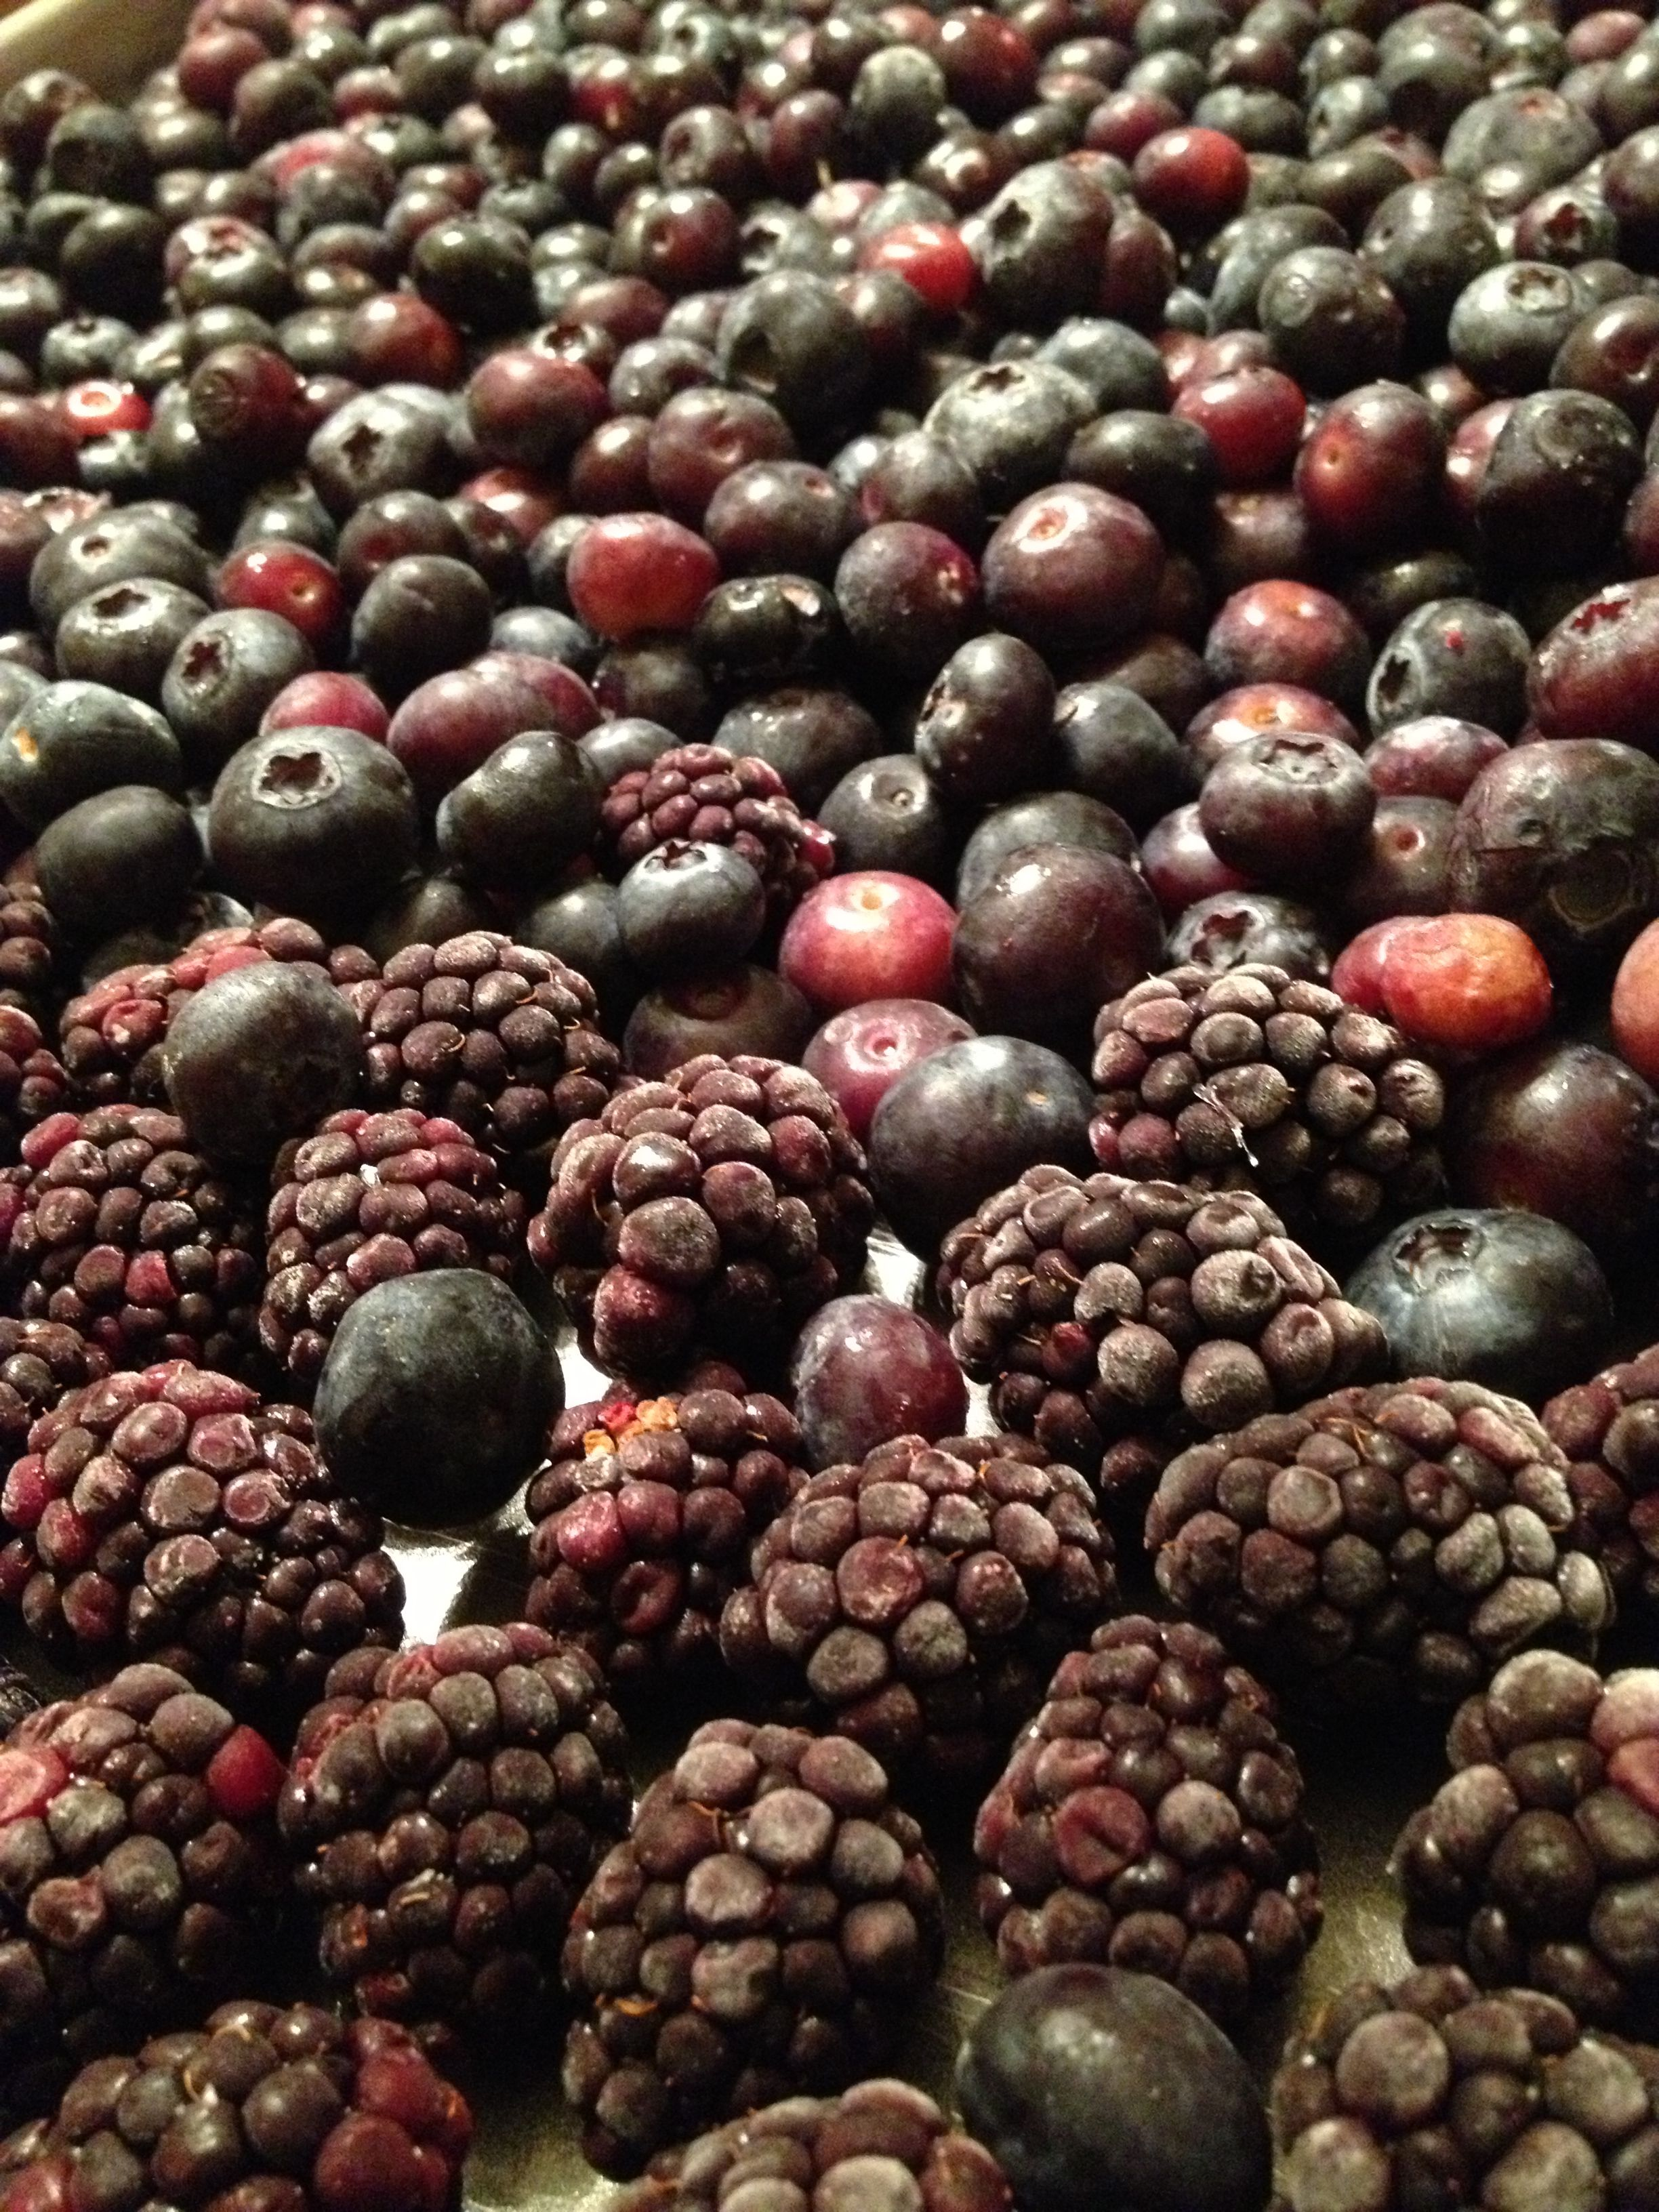 Freezing blackberries and blueberries for a weeks worth of